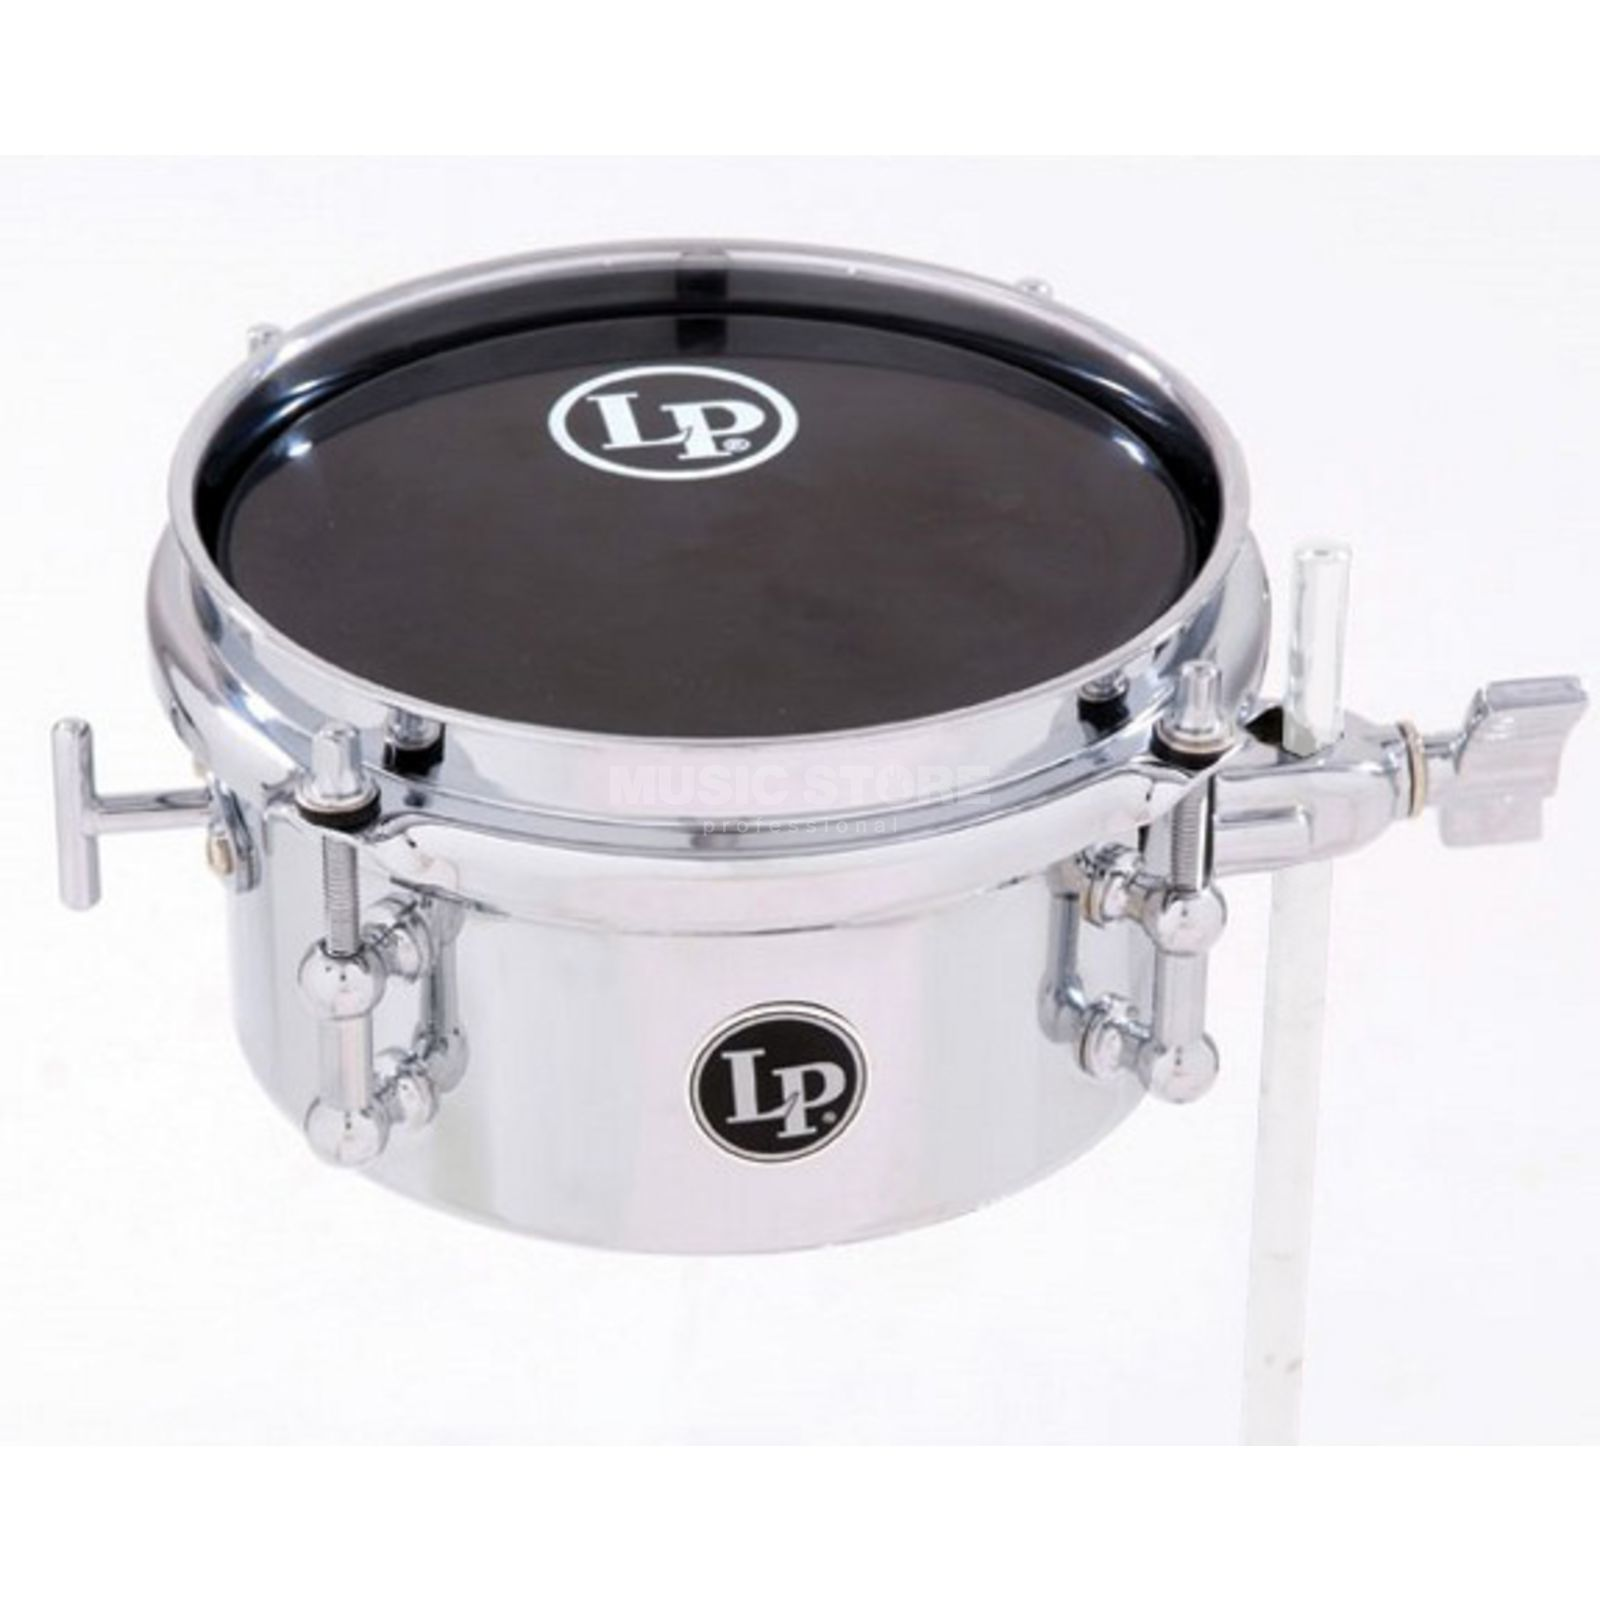 "Latin Percussion Micro Snare 6"", LP846-SN  Produktbillede"